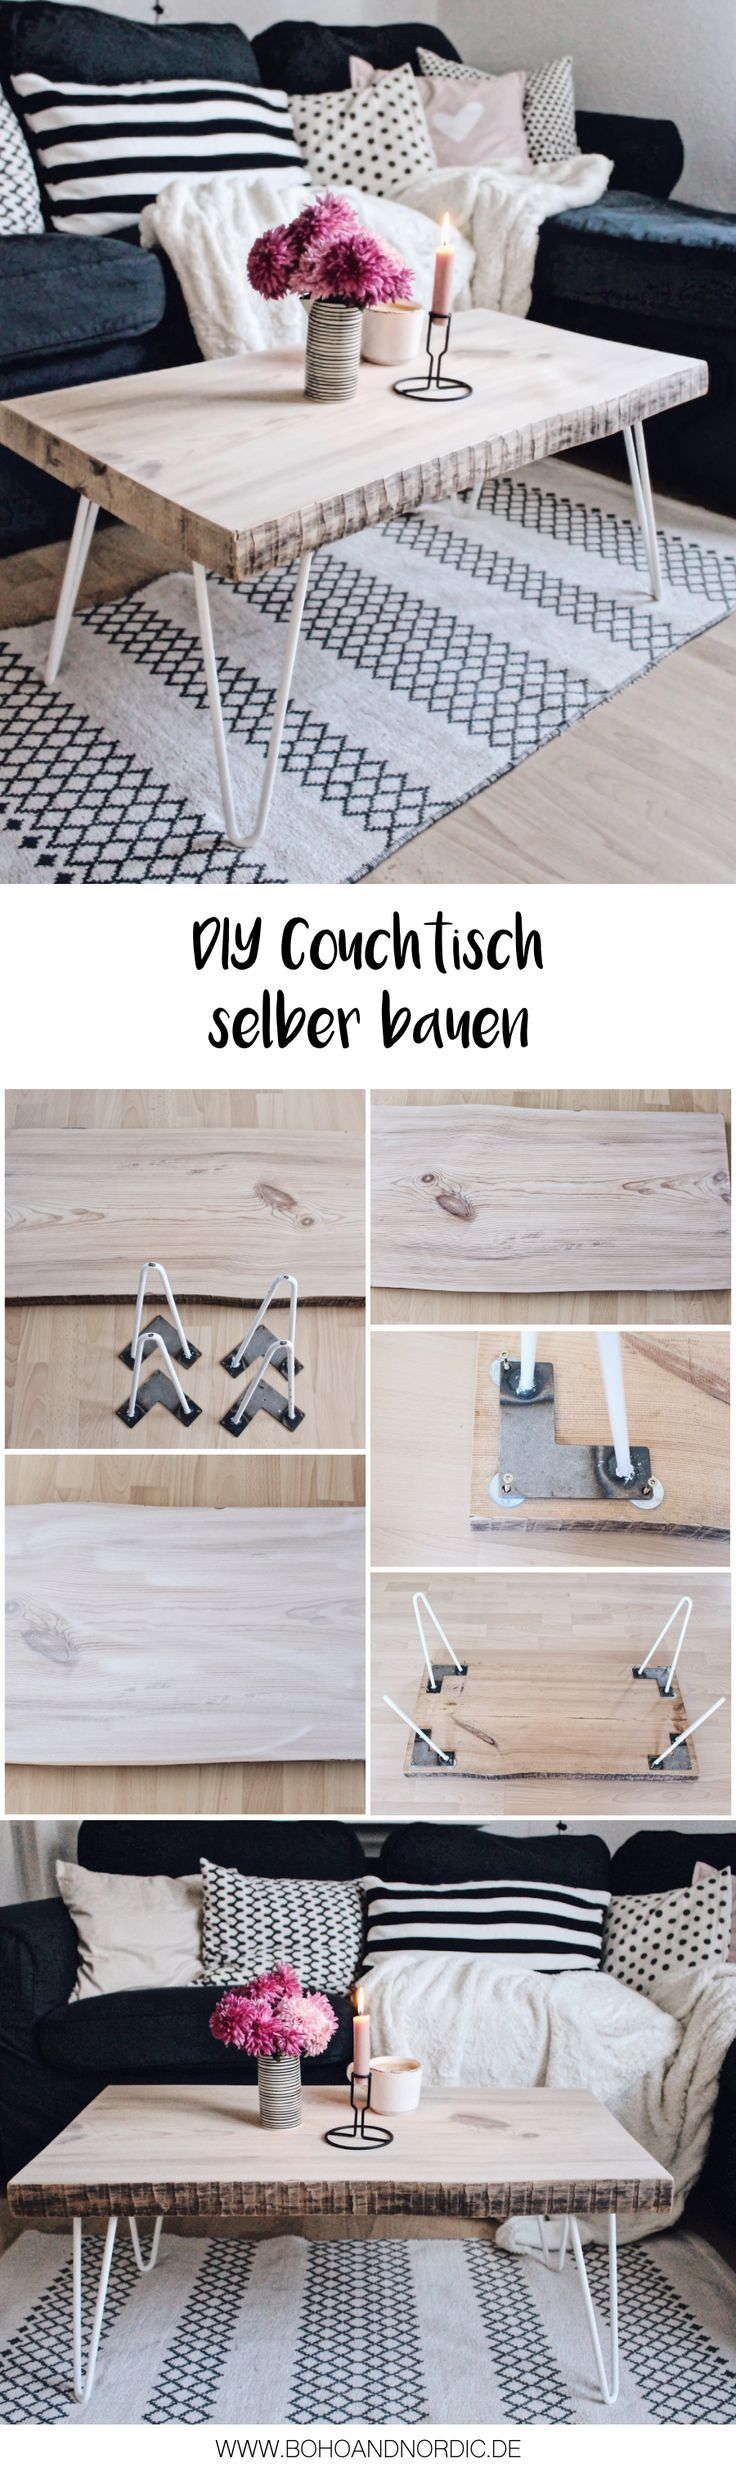 diy couchtisch selber bauen bauanleitung f r holztisch mit hairpin legs couchtisch selber. Black Bedroom Furniture Sets. Home Design Ideas